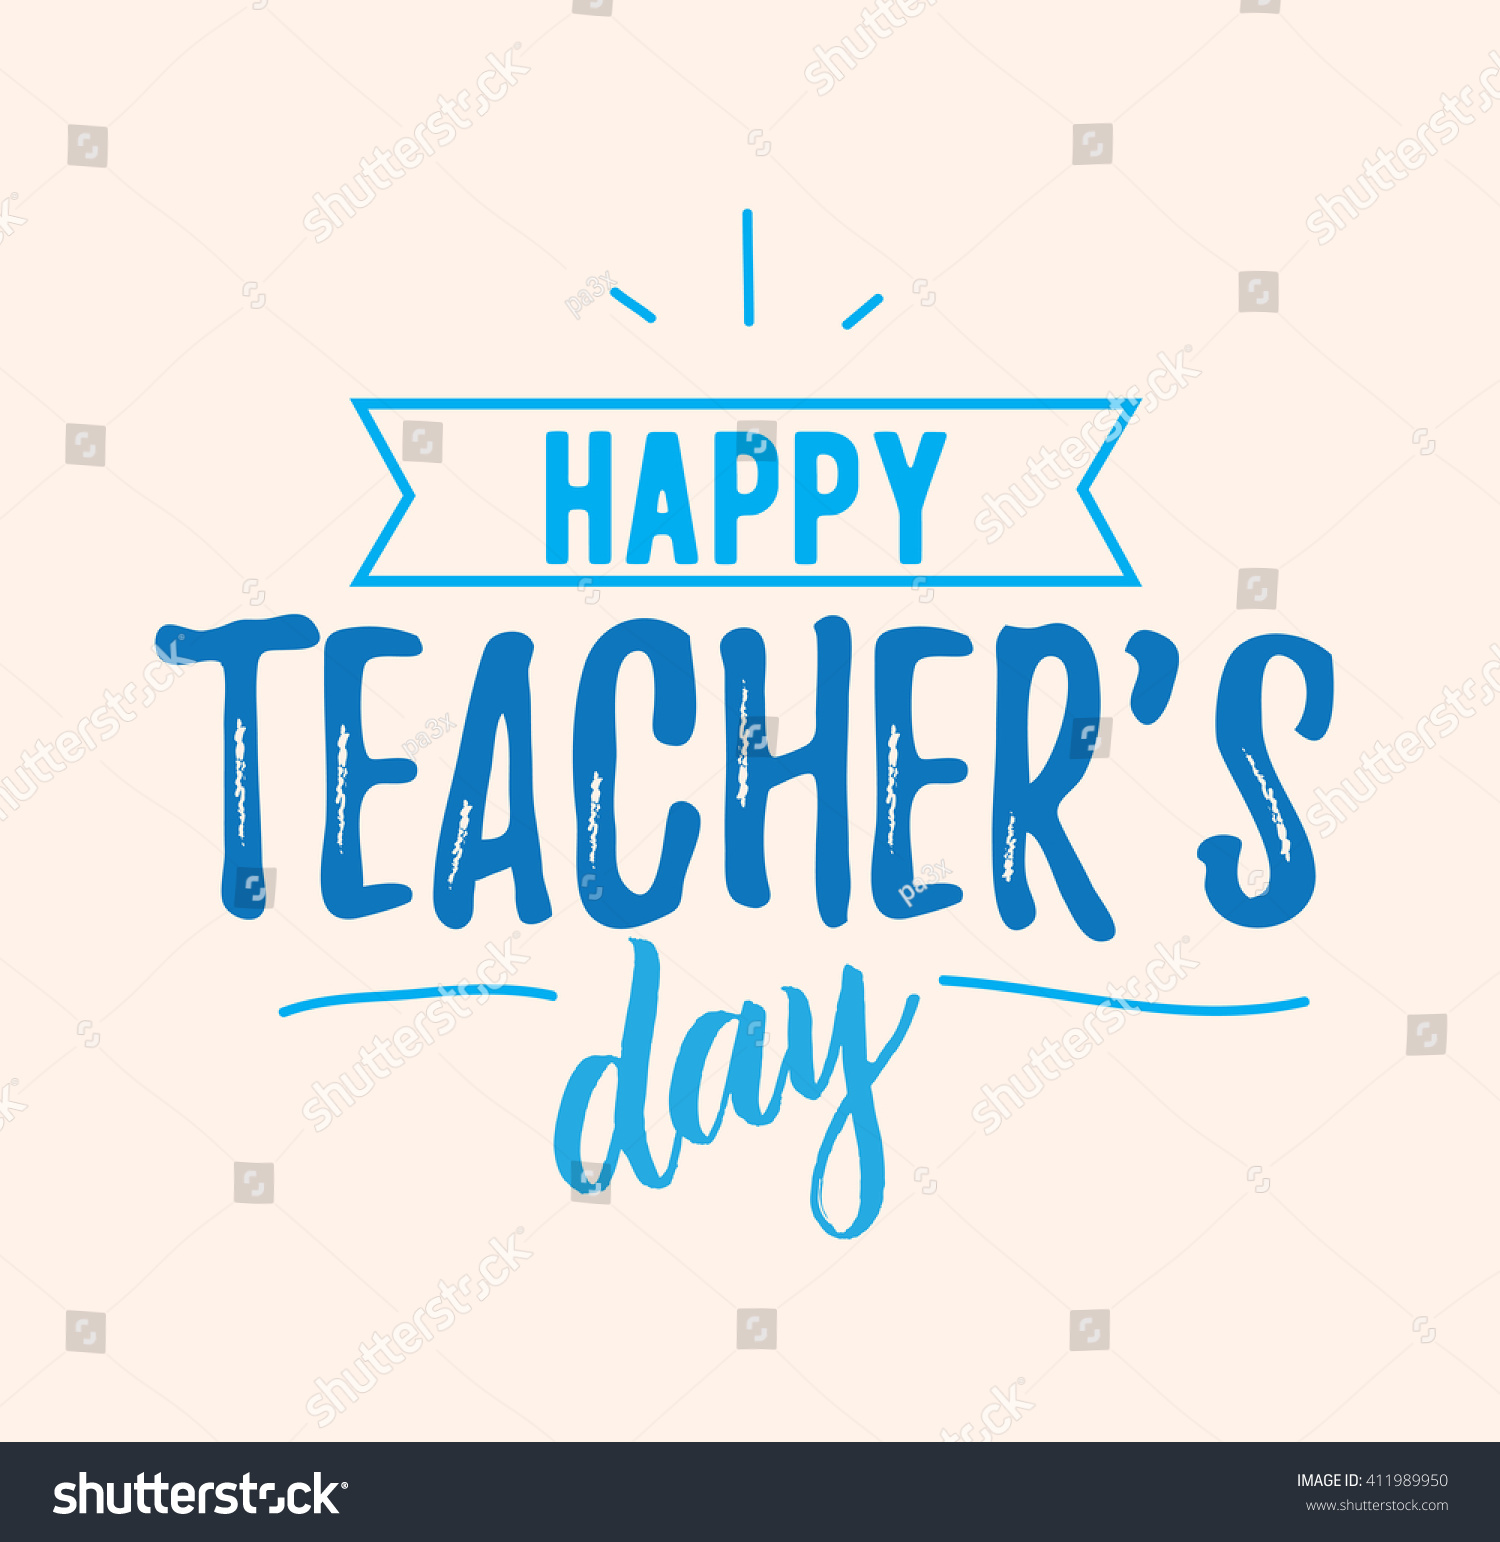 Beautiful Quotes For Teachers Day Cards: Happy Teachers Day Vector Typography Lettering Stock